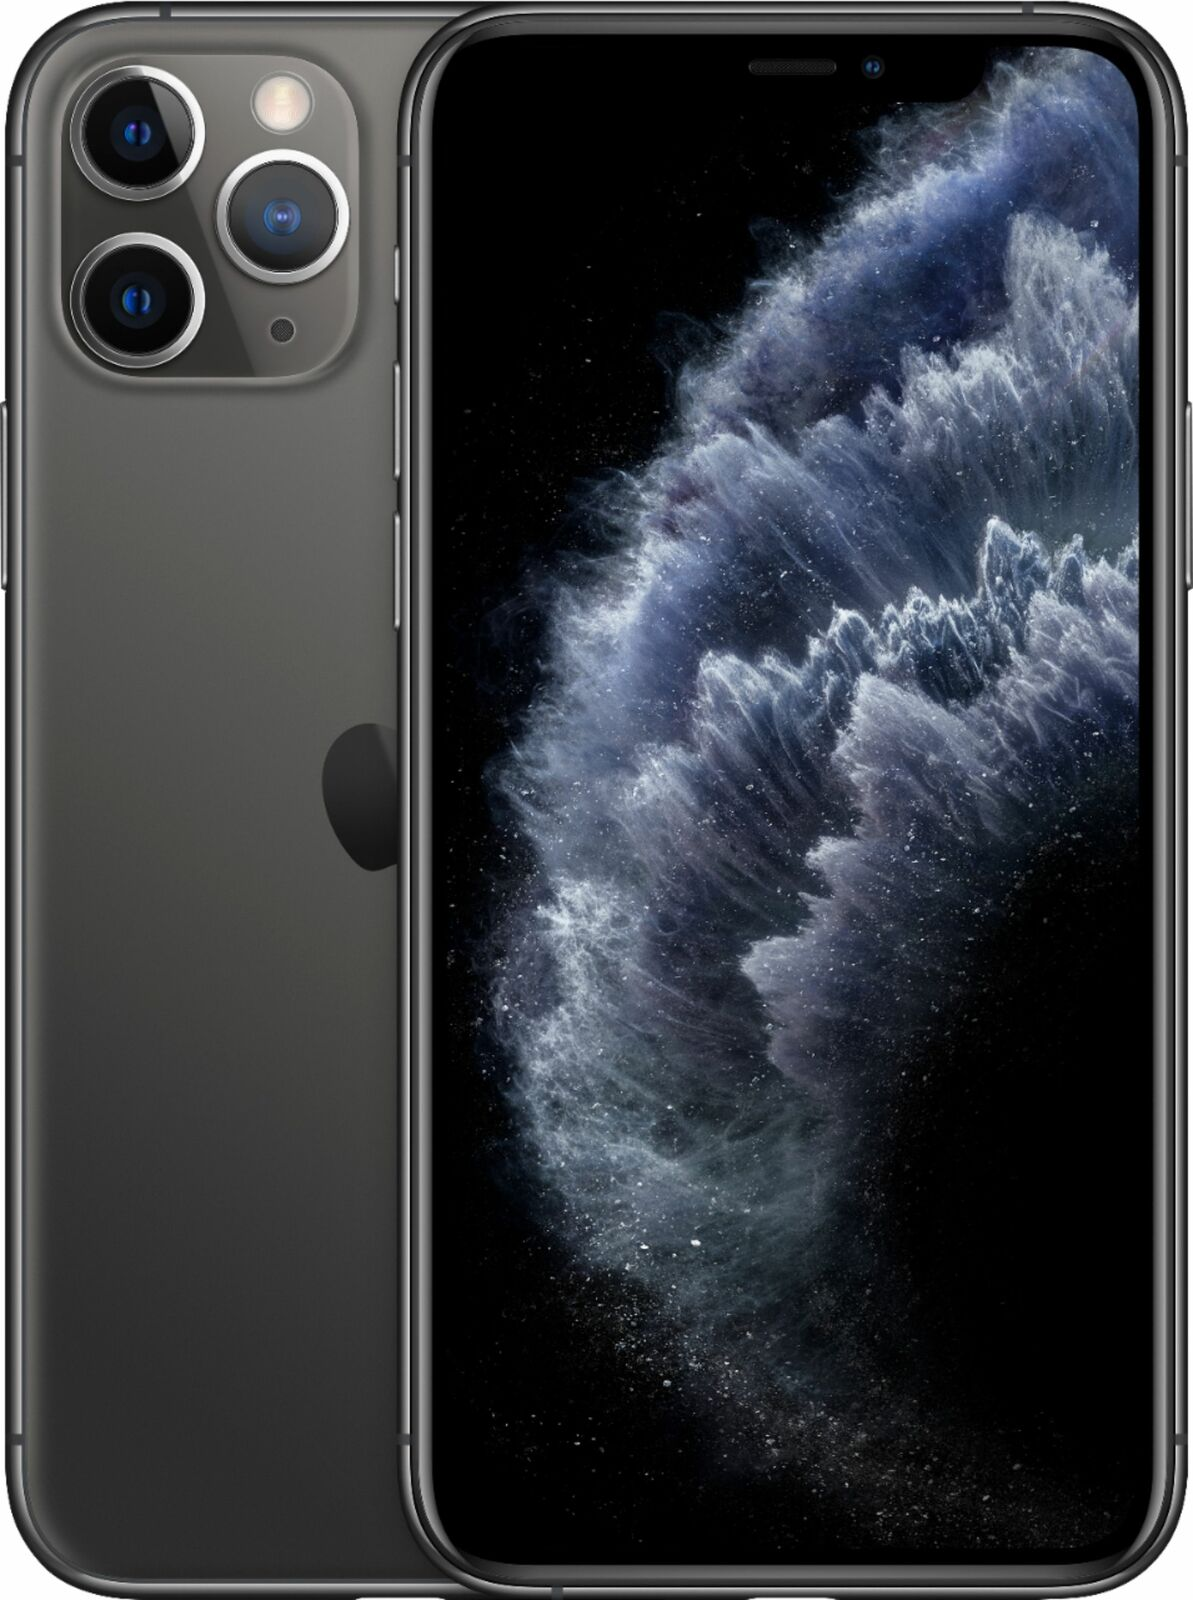 Apple iPhone 11 Pro 64GB Factory Unlocked 4G LTE Smartphone. Buy it now for 599.99